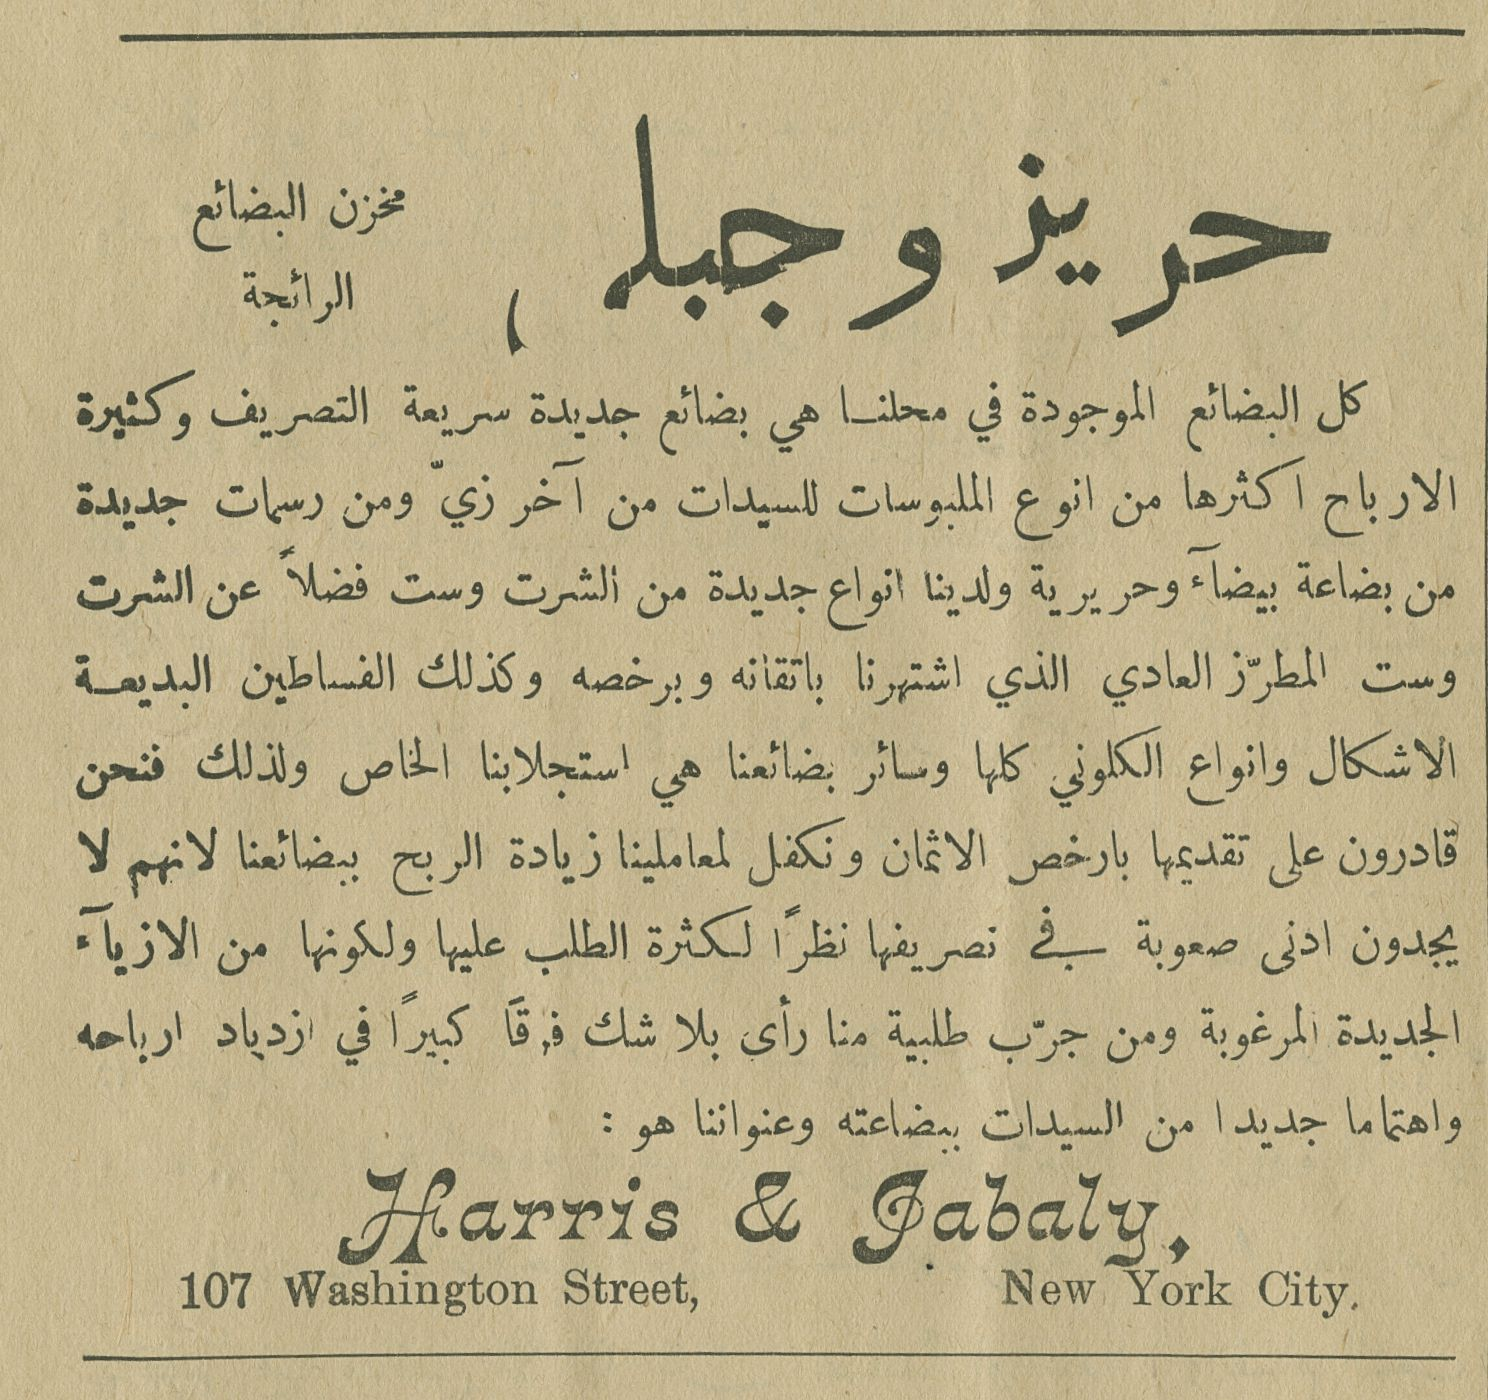 Newspaper article written in Arabic